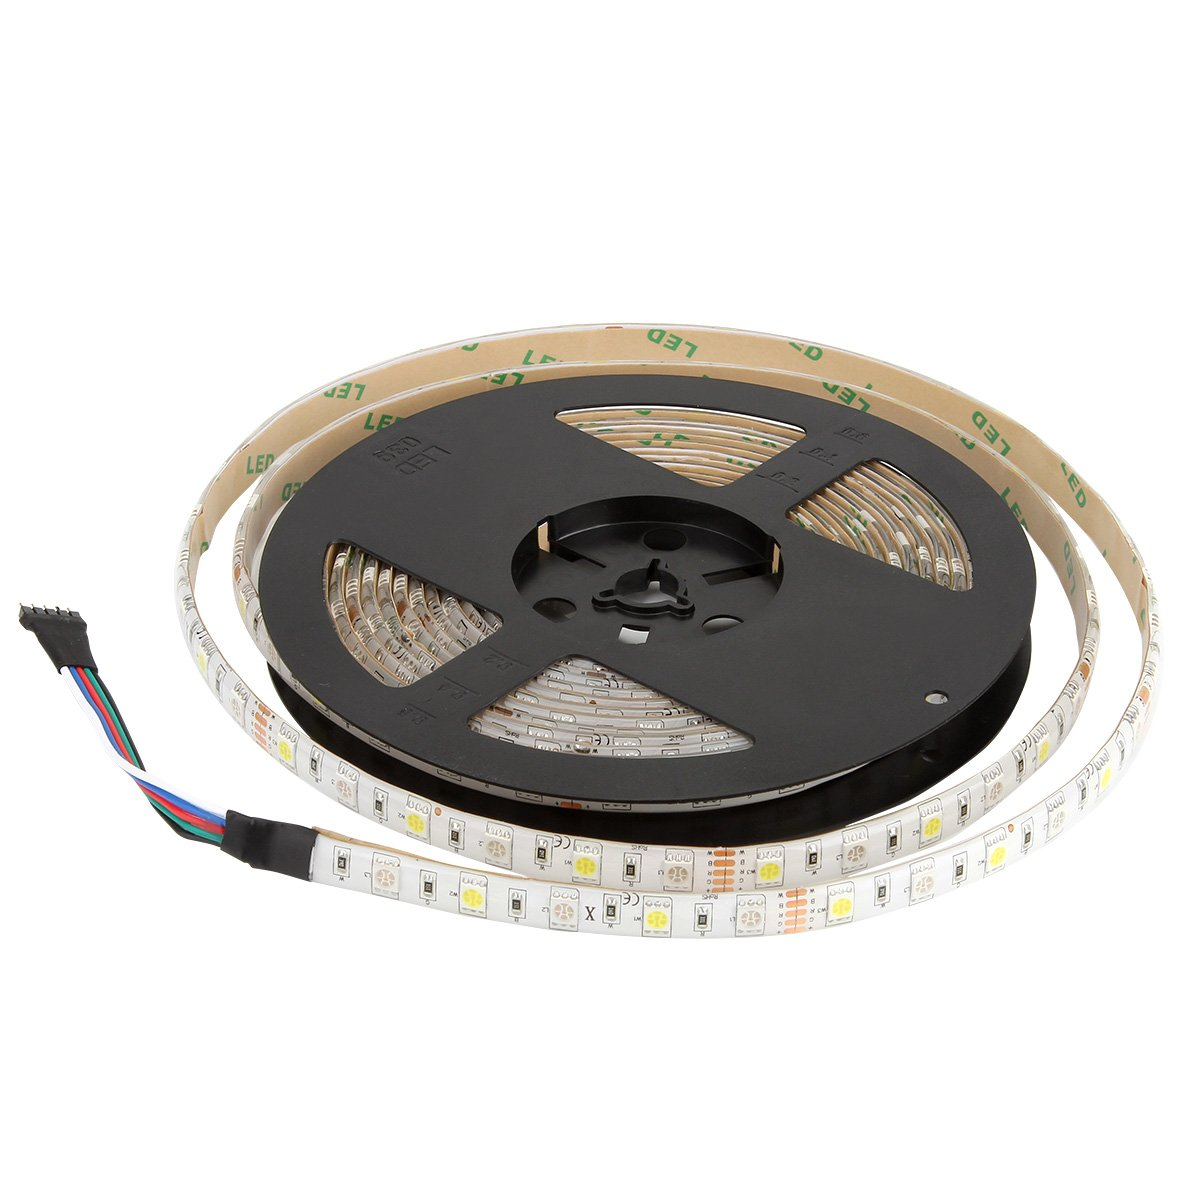 SUPERNIGHT 16.4ft 5050 300leds Waterproof RGBW LED Strip Flexible Light - Black Roll by SUPERNIGHT (Image #9)